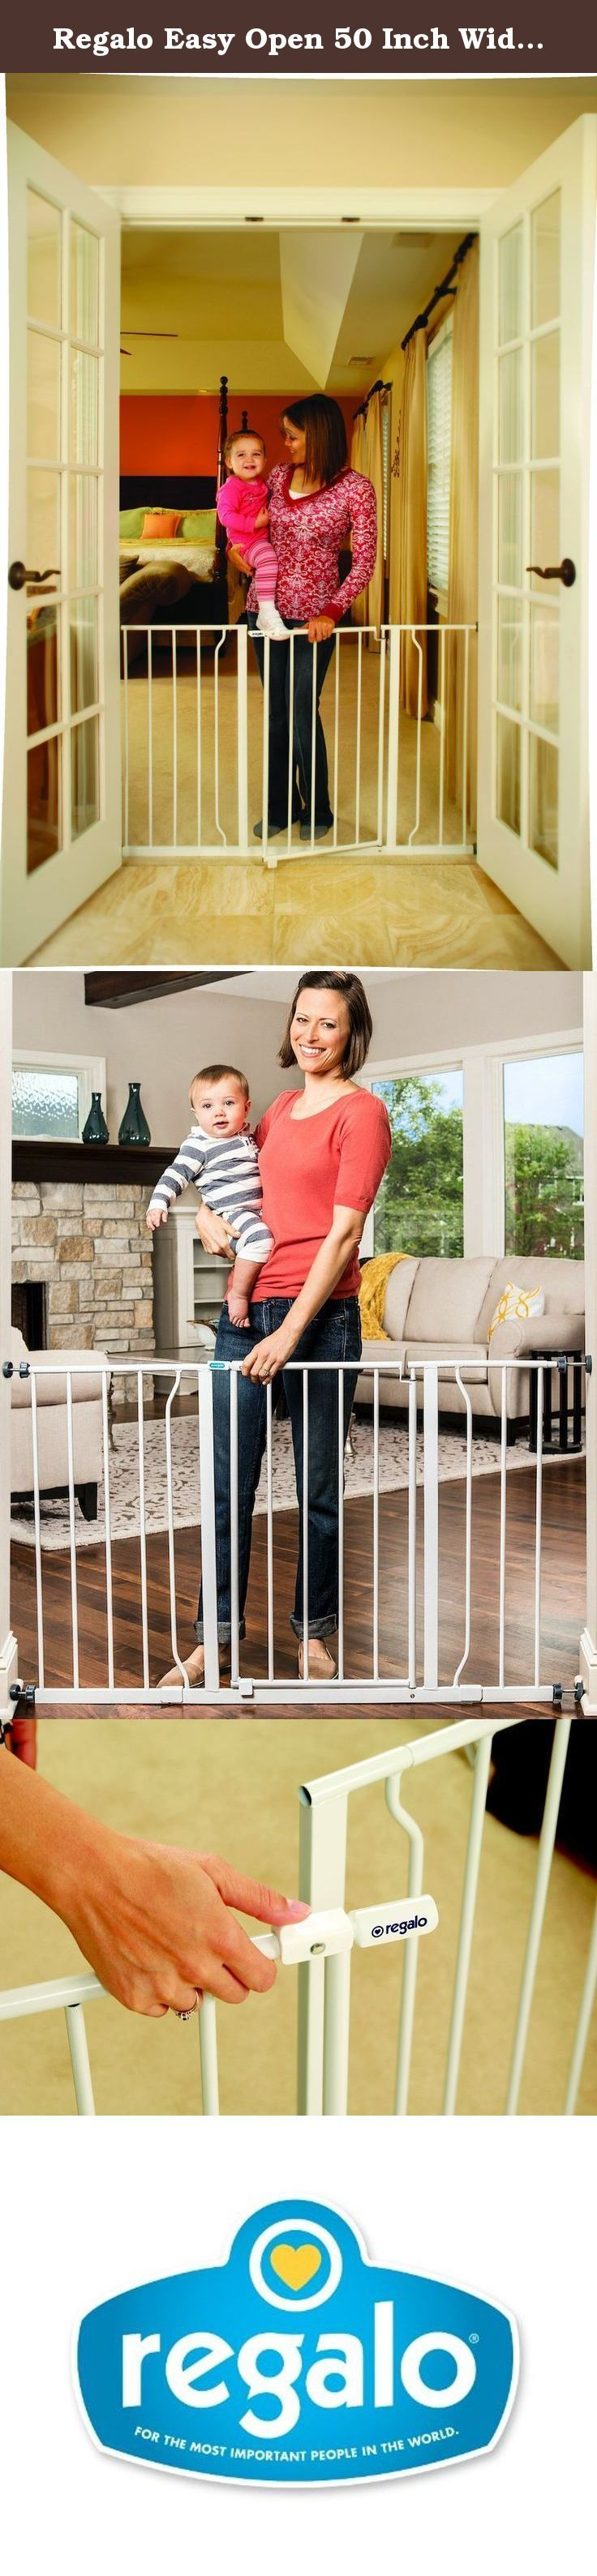 Regalo Easy Open 50 Inch Wide Baby Gate, Pressure Mount with 2 Included Extension Kits. View larger One touch release Sturdy Steel Construction with Secure Pressure Mounts The Easy Open Extra Wide Safety Gate boasts 100 percent steel construction for durability and strength, providing security you can rely on for those moments when you can't be within arm's reach of your child. It installs quick, requiring no tools with four pressure mounts that are each individually adjustable to provide…